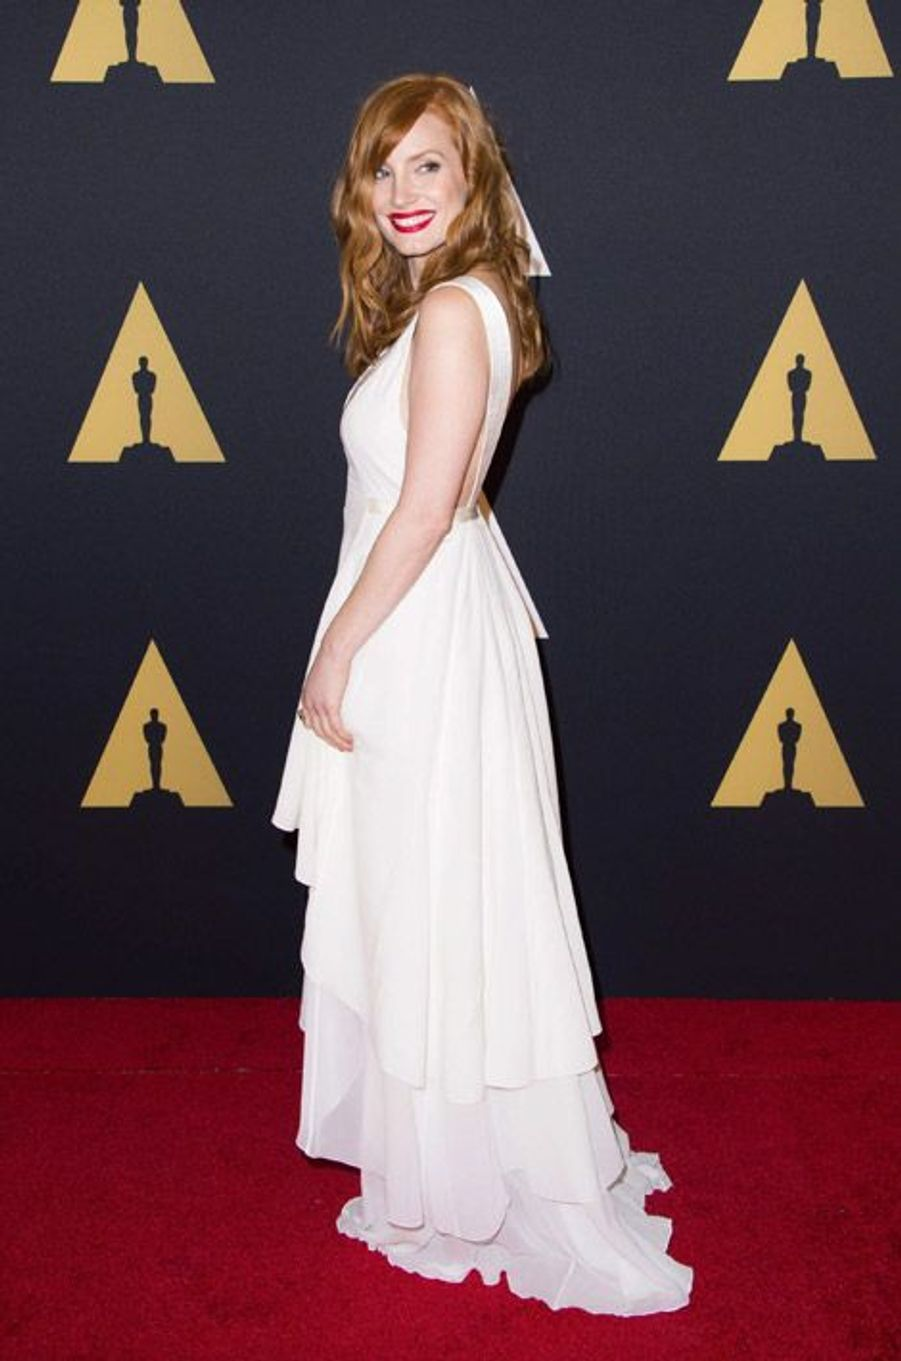 L'actrice Jessica Chastain en Nina Ricci lors du 6eme gala Annual Governors Awards à Hollywood